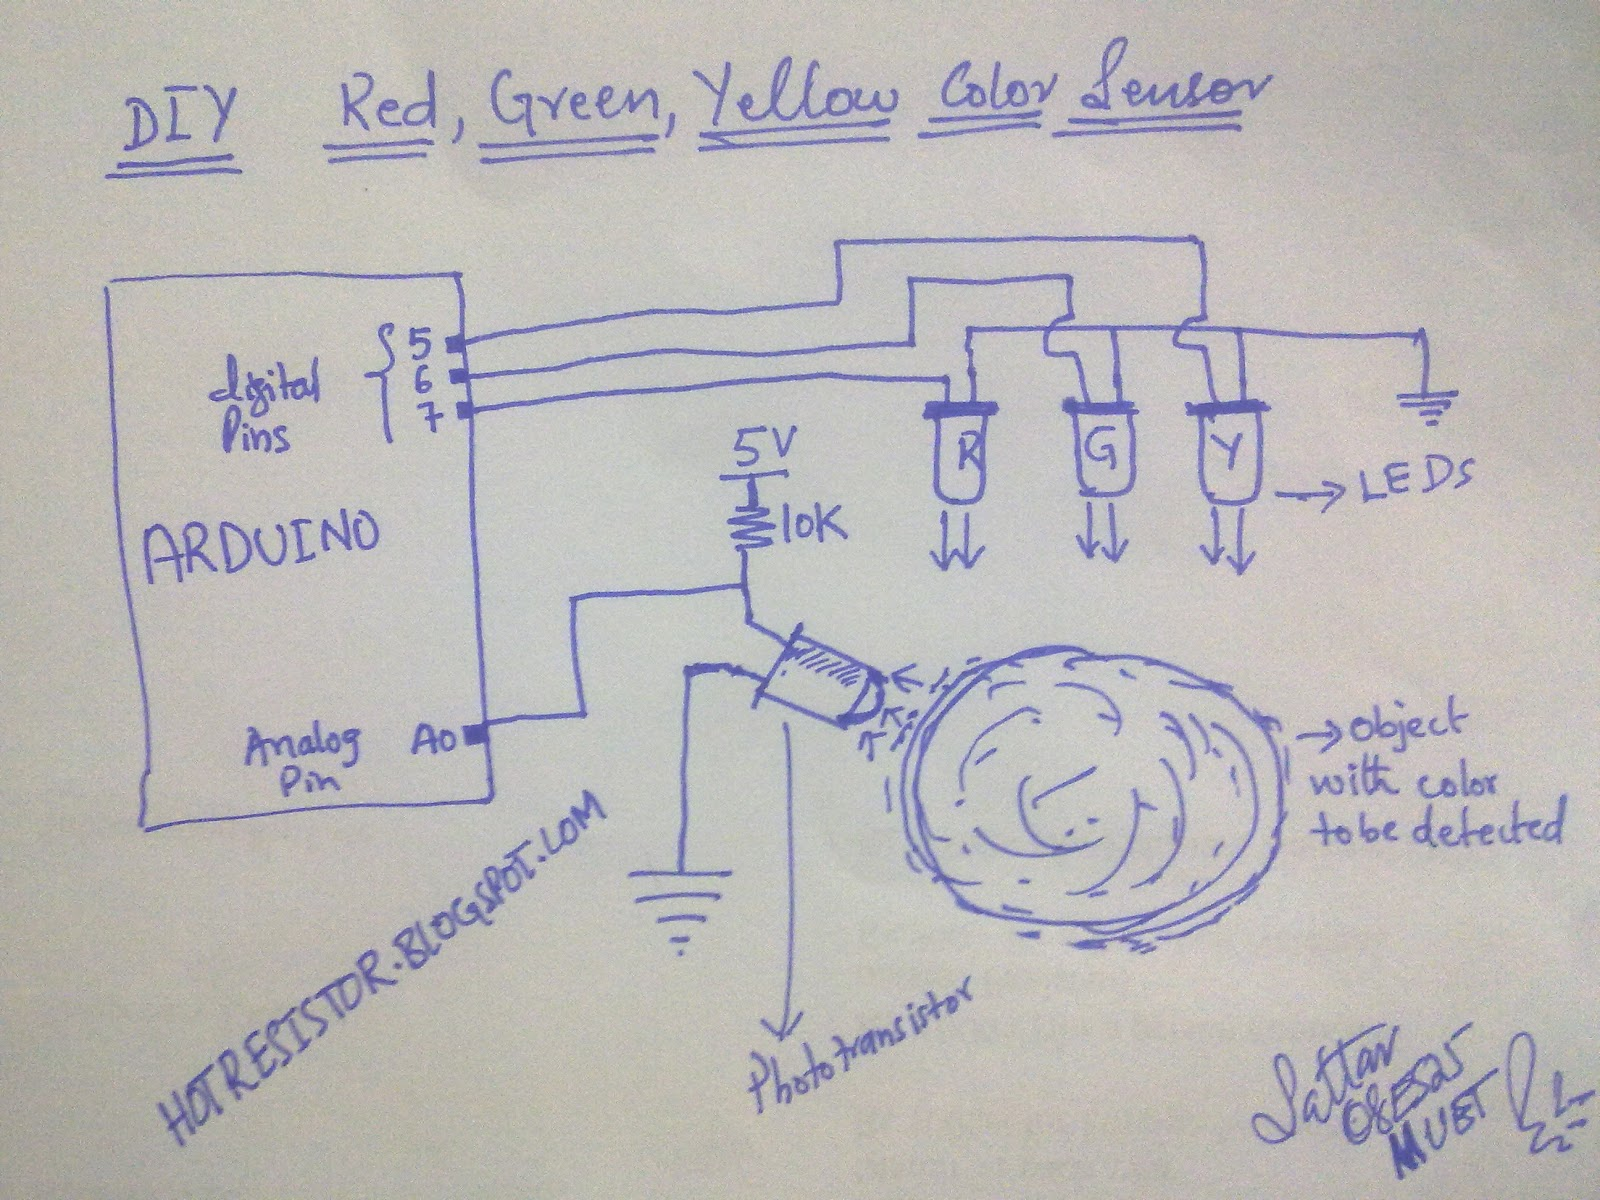 Arduino Based Rgy Color Sensor With Leds And Phototransistorcircuit Wireless Pressure Circuit Diagram Diy